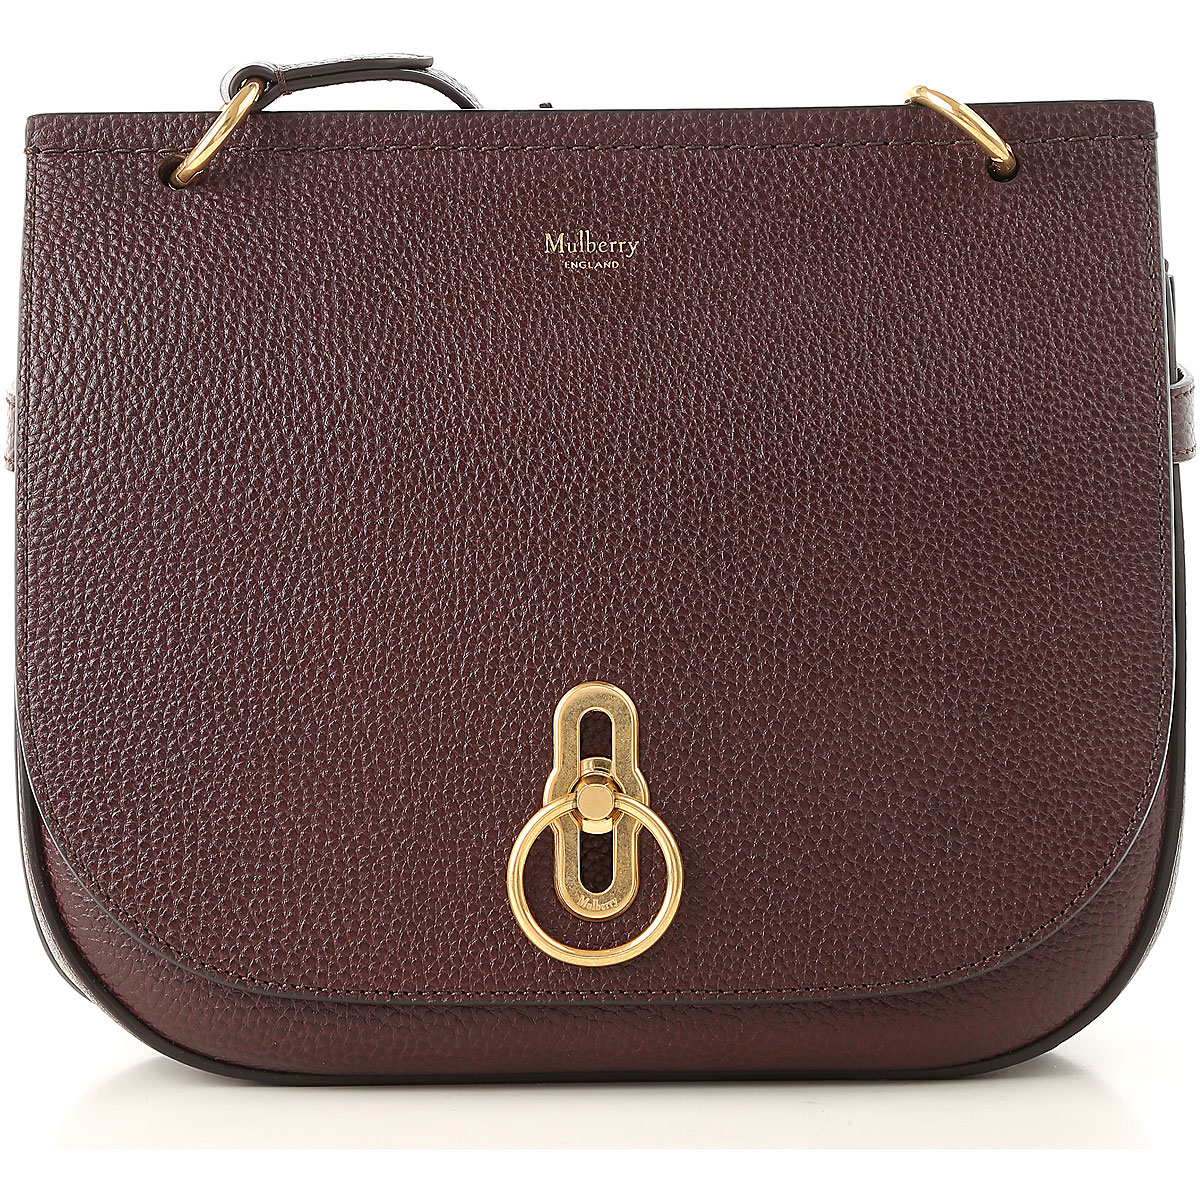 Image of Mulberry Shoulder Bag for Women, Bordeaux, Leather, 2017